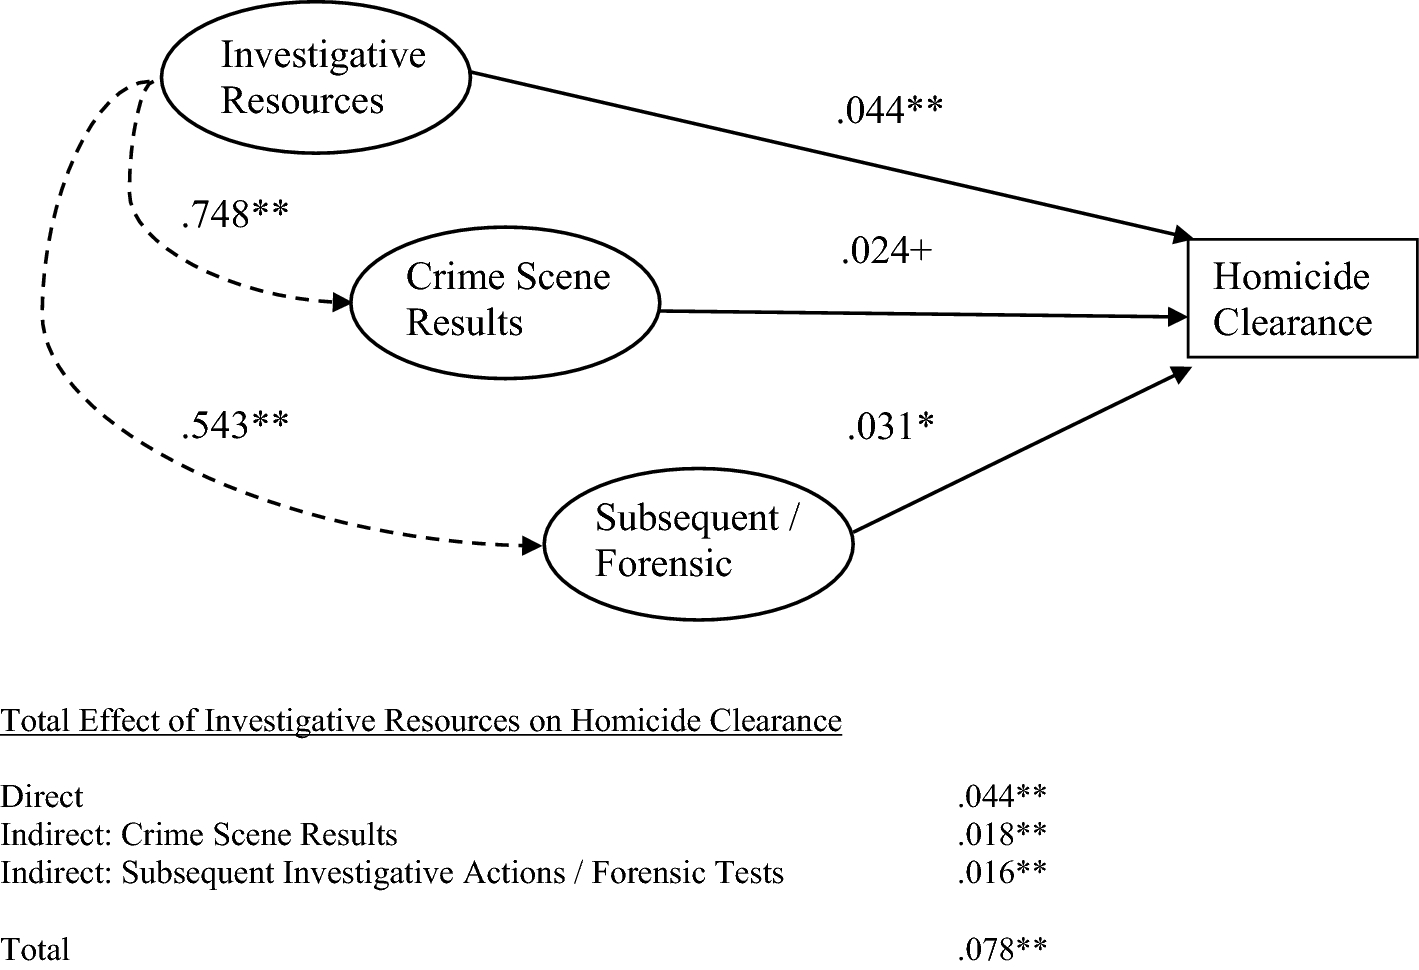 The Influence of Investigative Resources on Homicide